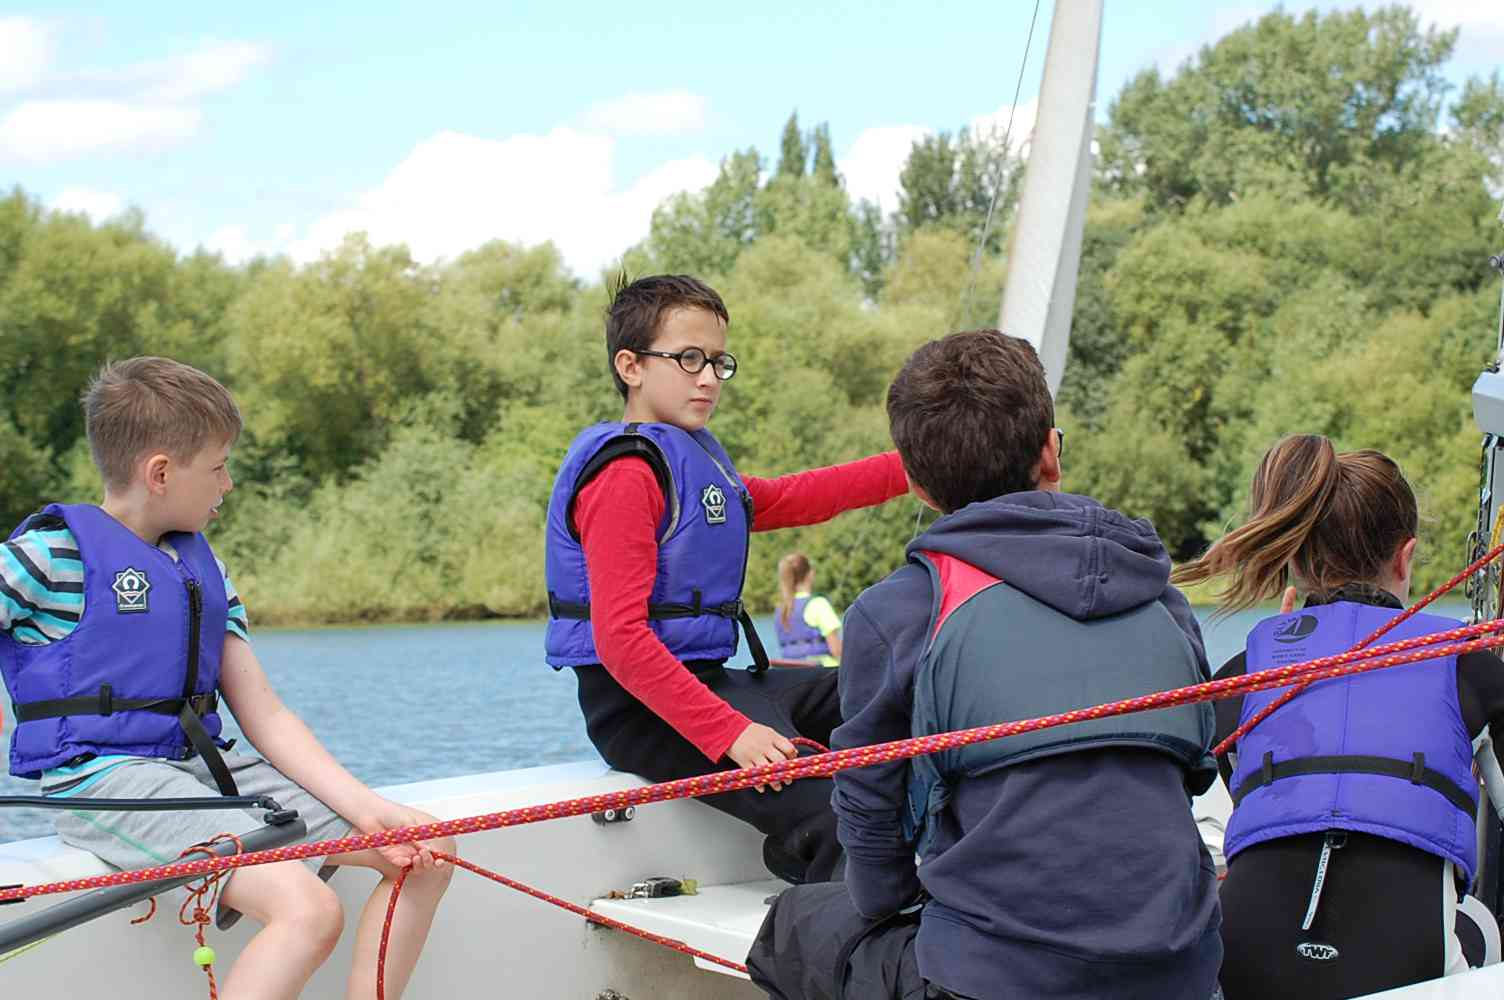 RYA Assistant Instructor